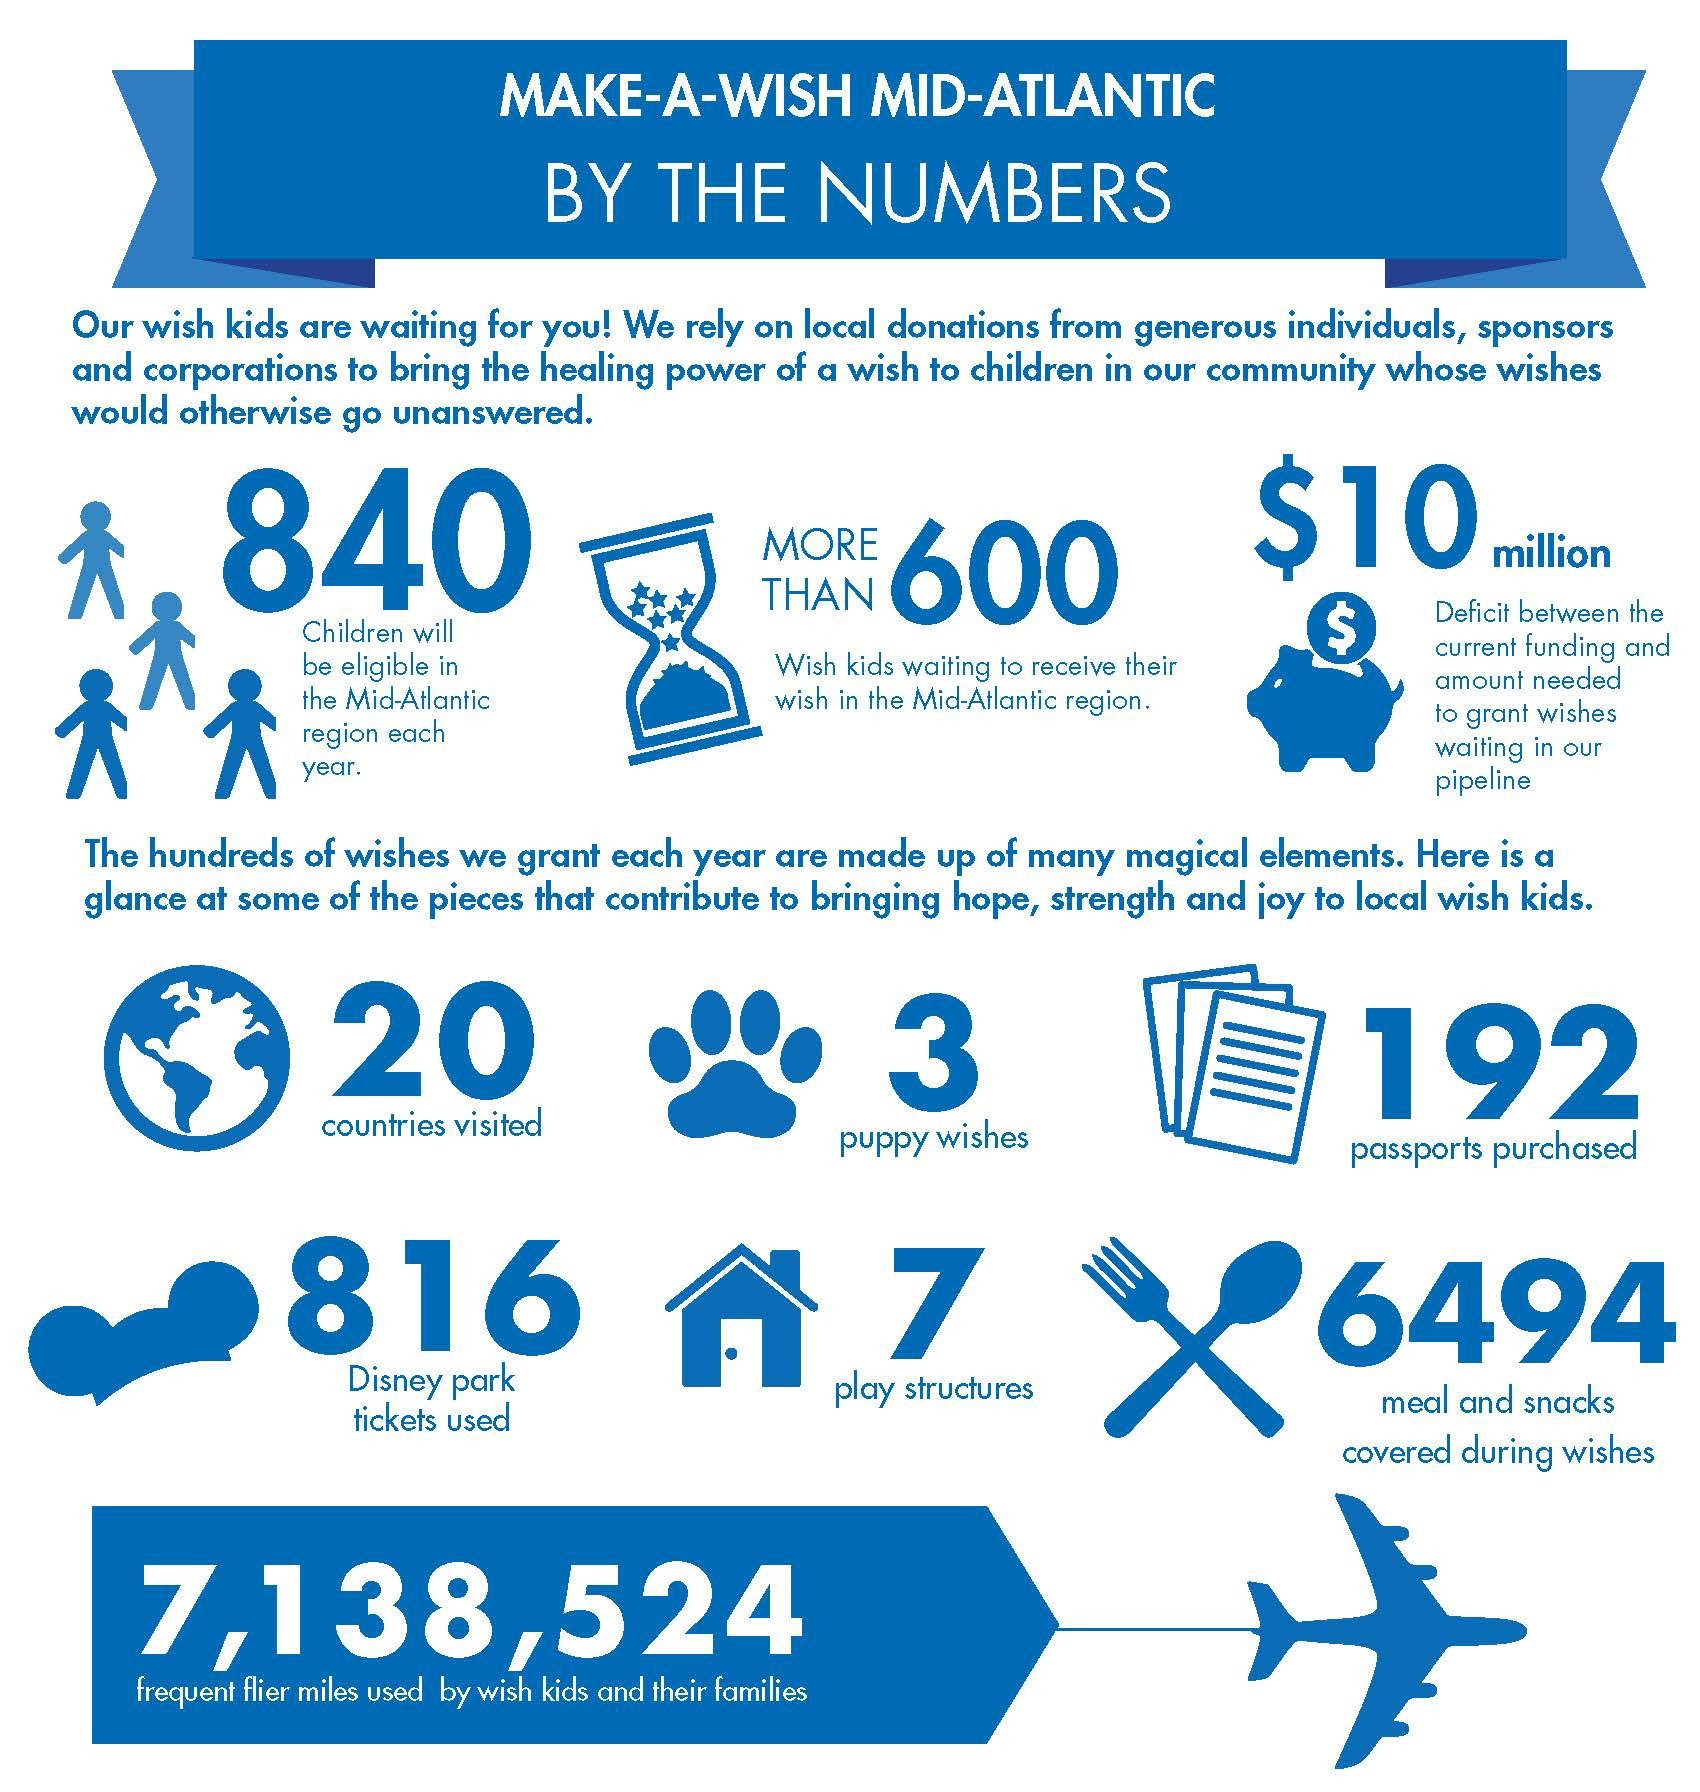 Make-a-Wish Mid-Atlantic Impact